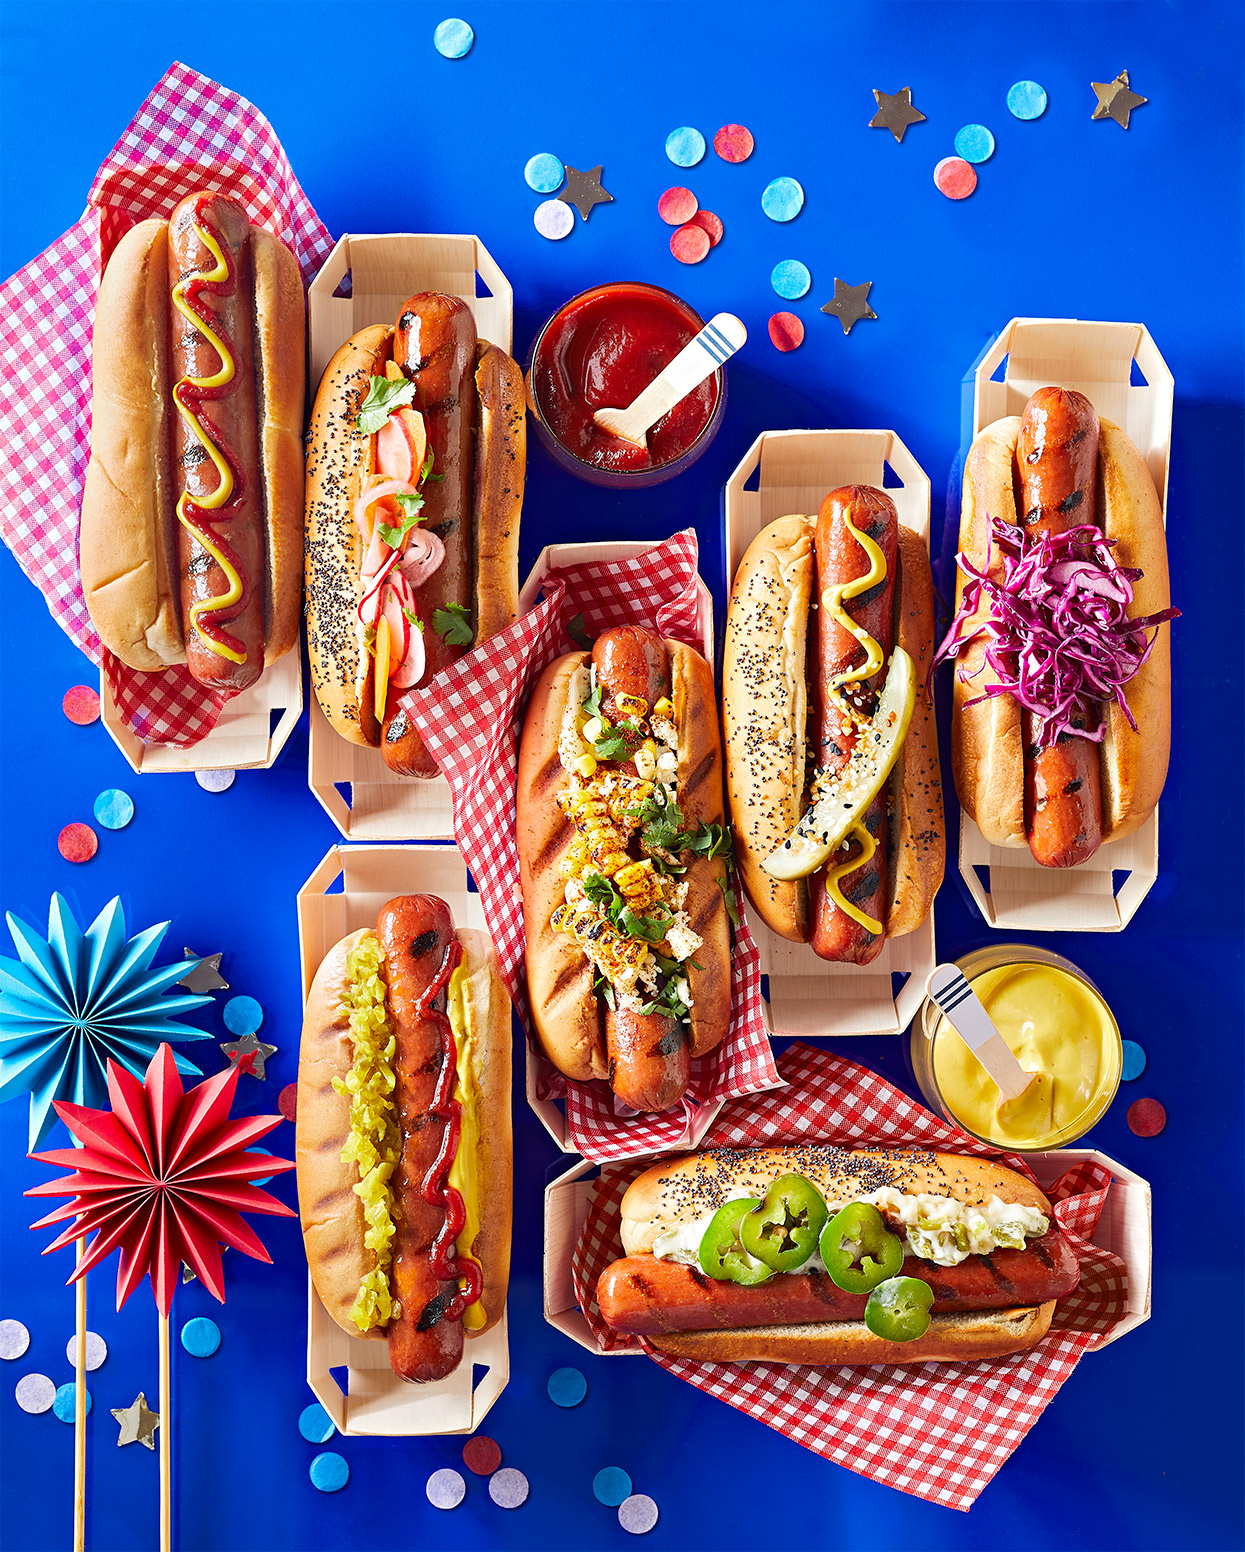 fourth of july hot dogs july 2019 cover image